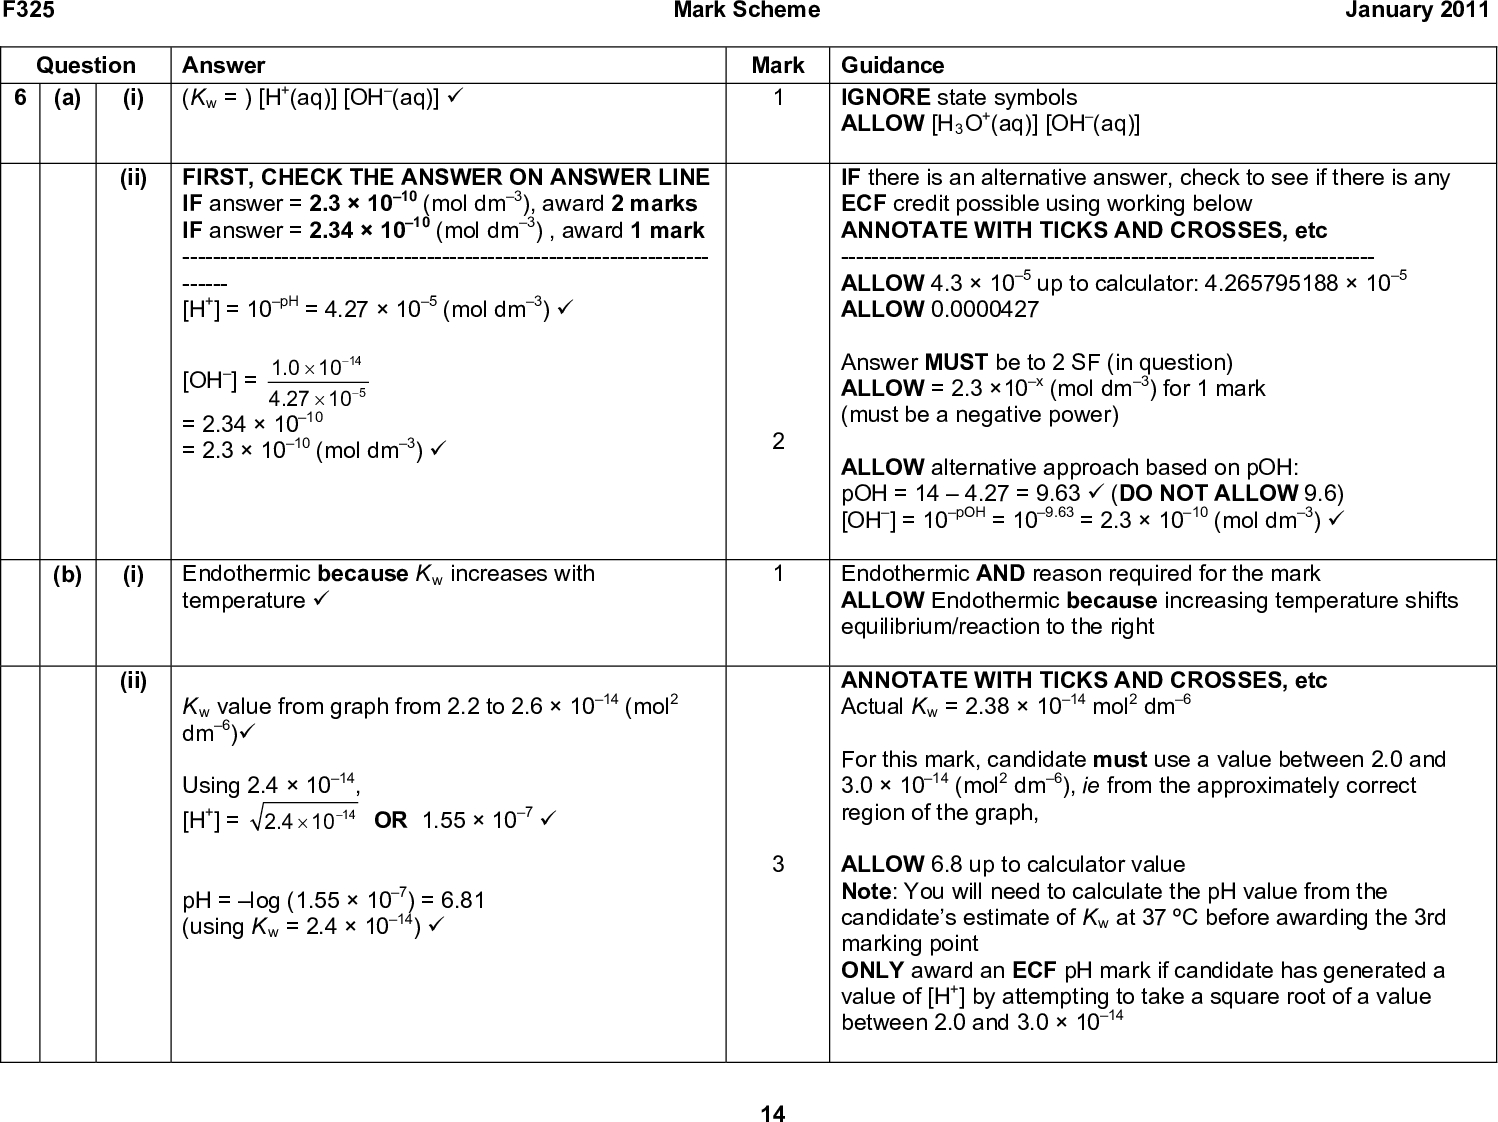 F325 Questio (a) n (i) wer Ans (Kw = ) [H+(aq)] [OH(aq)] (cid:57) Mark Scheme Mark Guidance January 2011 (i i) SWER LINE ard 2 marks m3) , award 1 mark ------------------------- FIRST, CHECK THE ANSWER ON AN IF answer = 2.31010 (mol dm3), aw IF answer = 2.341010 (mol d -------------------------------------------- ------ [H+] = 10pH = 4.2710 [OH] = = 2.341010 = 2.31010 (mol dm3) (cid:57) 1.0 (cid:117) 10(cid:16)14 27 (cid:117)10(cid:16)5 4. 5 (mol dm3) (cid:57) (b) i) Endothermic because K increases with temperature (cid:57) (i i) 14 (mol2 ng 2.41014, K value from graph from 2.2 to 2.610 dm6)(cid:57) Usi [H+] = 2.4 (cid:117)10(cid:16)14 OR 1.55107 (cid:57) pH = log (1.55107) = 6.81 (using Kw = 2.41014) (cid:57) 14 elow ------ to calculat , check to see if there is any or: 4.265795188105 IGNORE state symbols ALLOW [H3O+(aq)] [OH(aq)] IF there is an alternative answer ECF credit possible using working b ANNOTATE WITH TICKS AND CROSSES, etc -------------------------------------- -------------------------- ALLOW 4.3105 up ALLOW 0.0000427 Answer MUST be to 2 SF (in question) ALLOW = 2.3 10x (mol dm3) for 1 mark (must be a negative power) ALLOW alternative approach based pOH = 144.27 = 9.63 (cid:57) (DO NOT ALLO [OH] = 10pOH = 109.63 = 2.3101 (mol dm ndothermi AND reason q E ALLOW Endothermic becaus equilibrium/reaction to th e right ANNOTATE WITH TICKS AND CROSSES, etc Actual Kw = 2.381014 mol2 dm6 For this mark, candidate must use a 3.01014 (mol2 dm6), ie from the approximately correc t region of the graph, ALLOW 6.8 up to calculator value Note: You will need to calculate the pH value from the candidates estimate of Kw at 37 C before awarding the 3rd marking point O NLY award an ECF pH mark if candidate has generated a value of [H+] by attempting to take a square root of a value between 2.0 and 3.01014 value between 2.0 and re uired for the mark W 9.6) 3) (cid:57) e increasing temperature shifts on pOH:<br />  Mark Scheme January 2011 Answer (Work is) inaccurate OR inva 